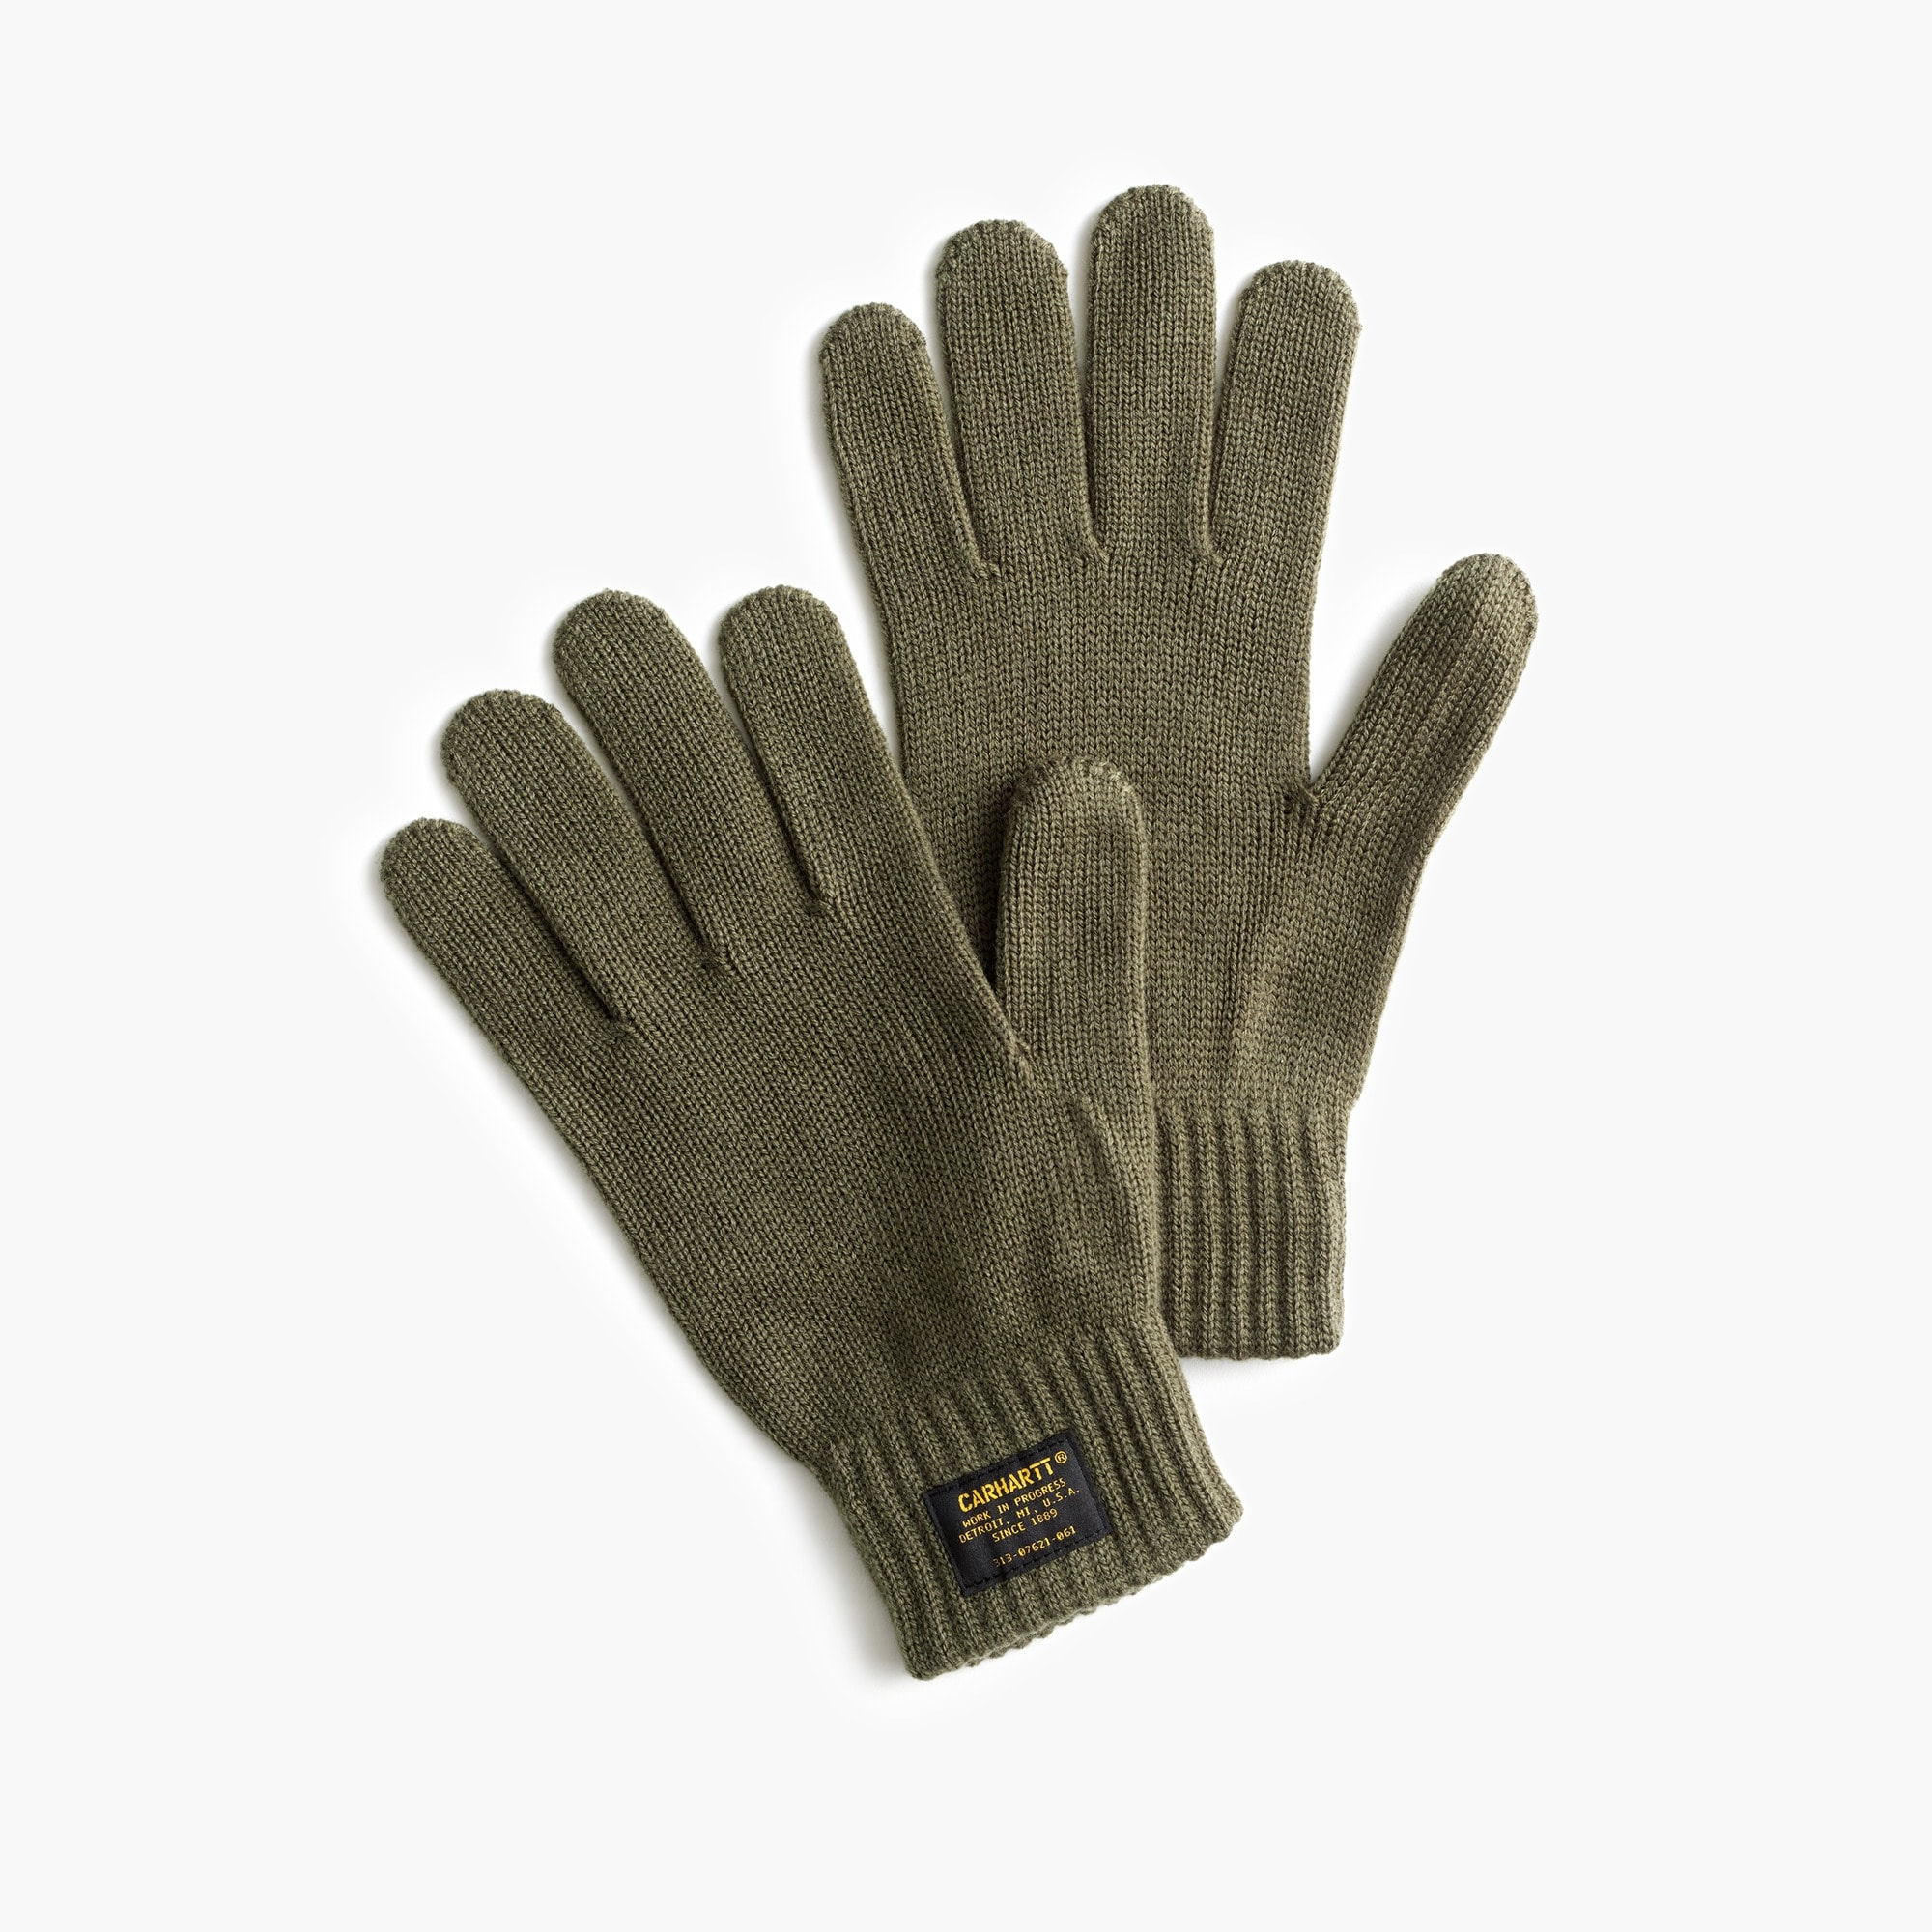 Carhartt® Work in Progress gloves